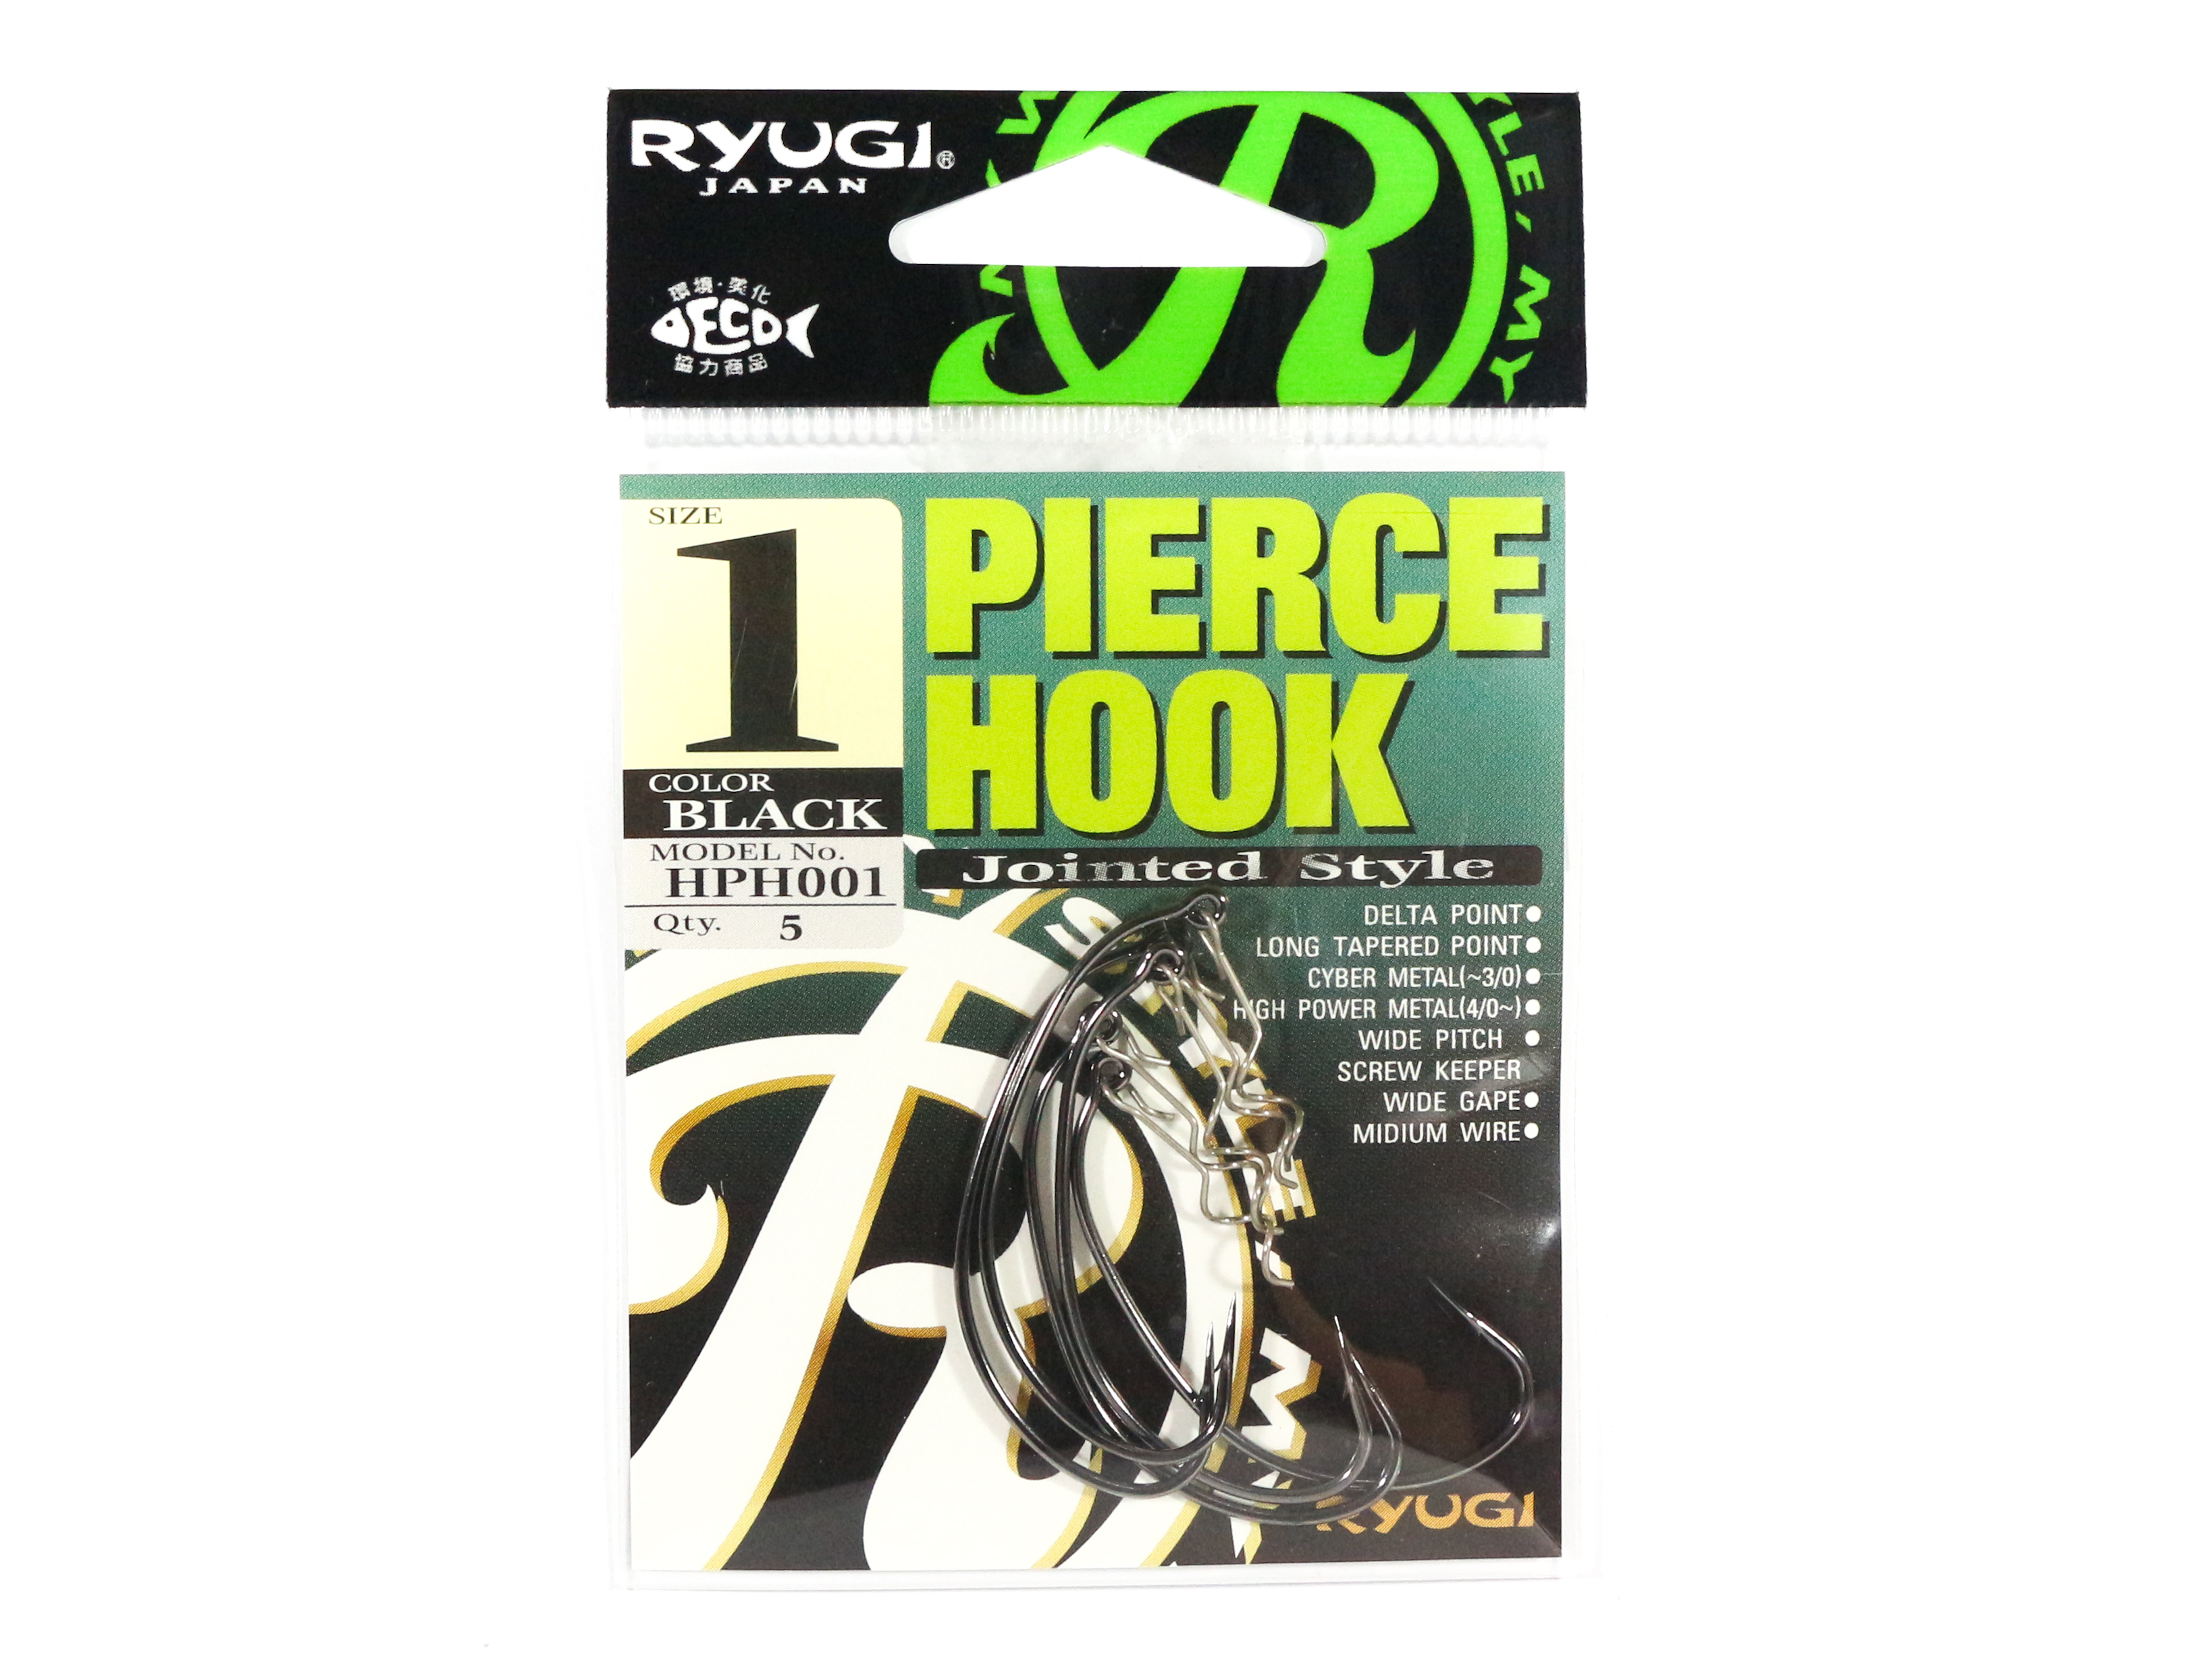 Ryugi HPH001 Pierce Hook Wide Gap Screw Keeper Size 1 (0560)